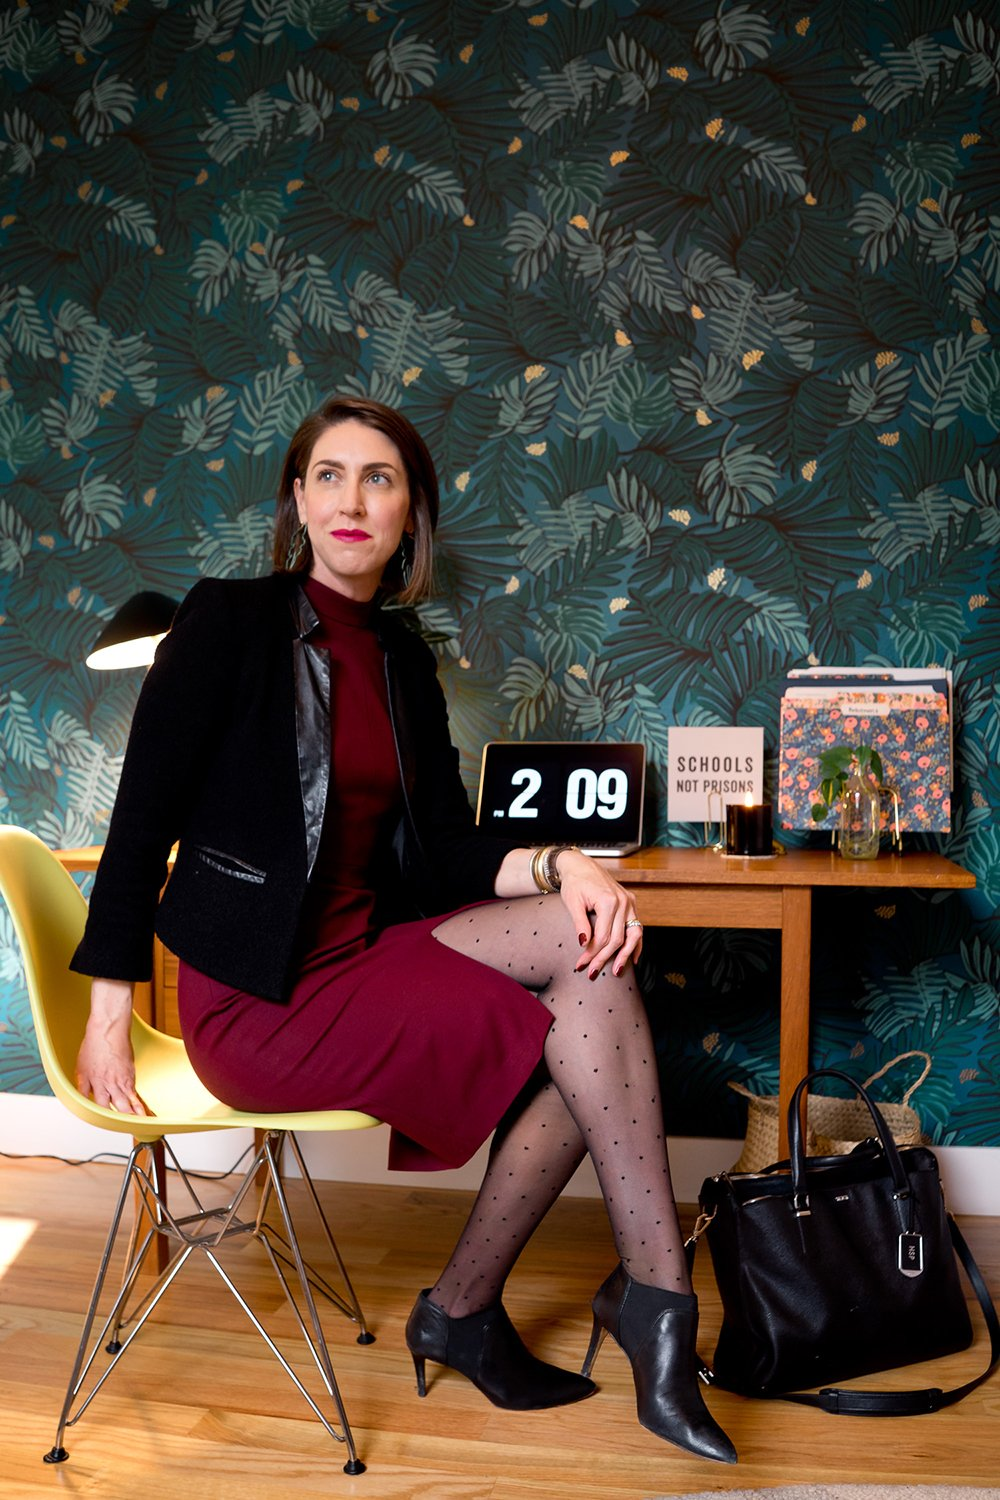 Lawyer Hannah Proff's week of outfits